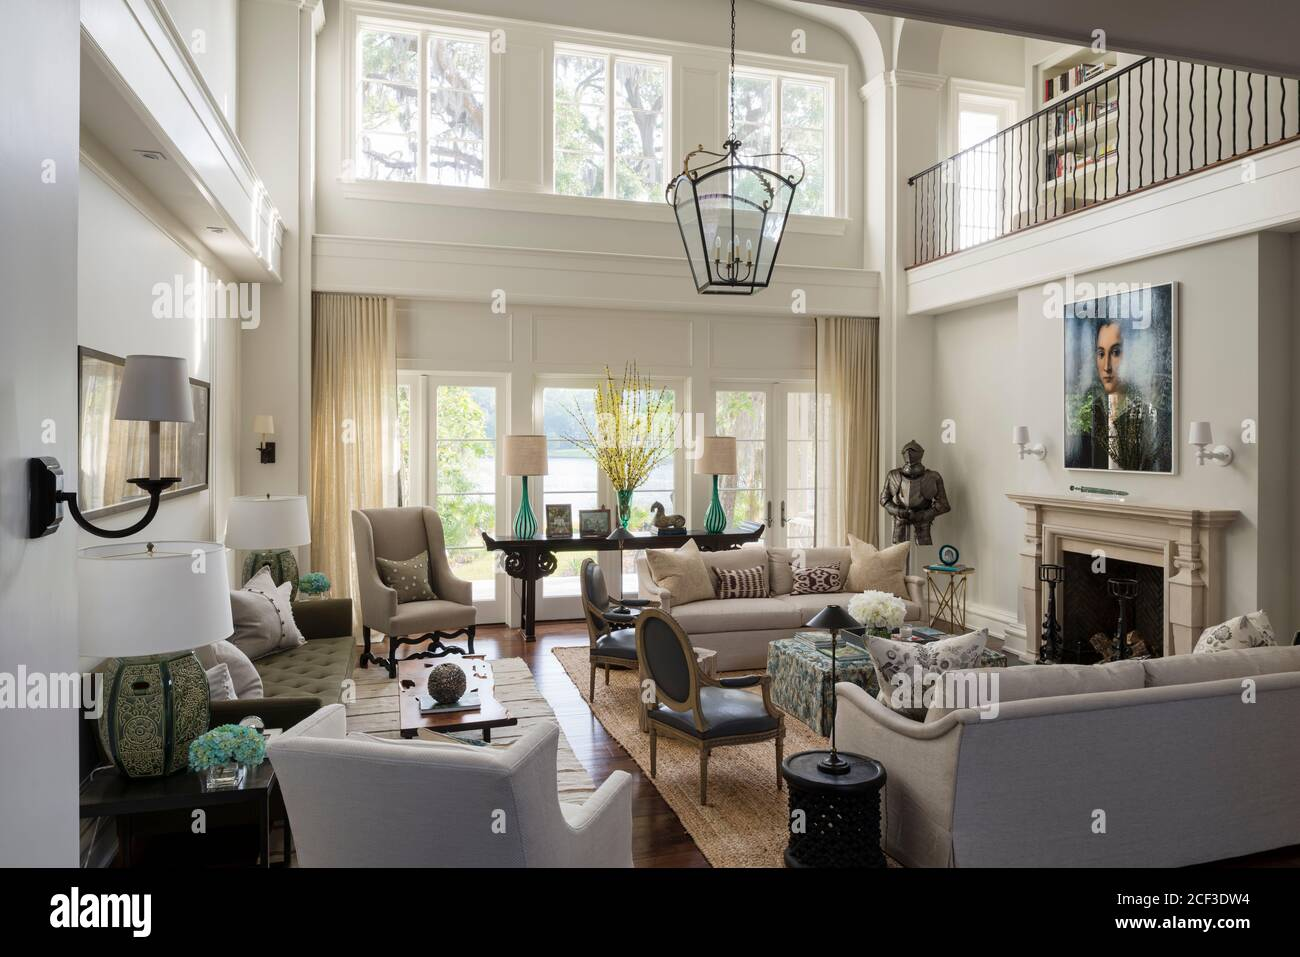 Country Style Living Room With Double Height Ceiling Stock Photo Alamy